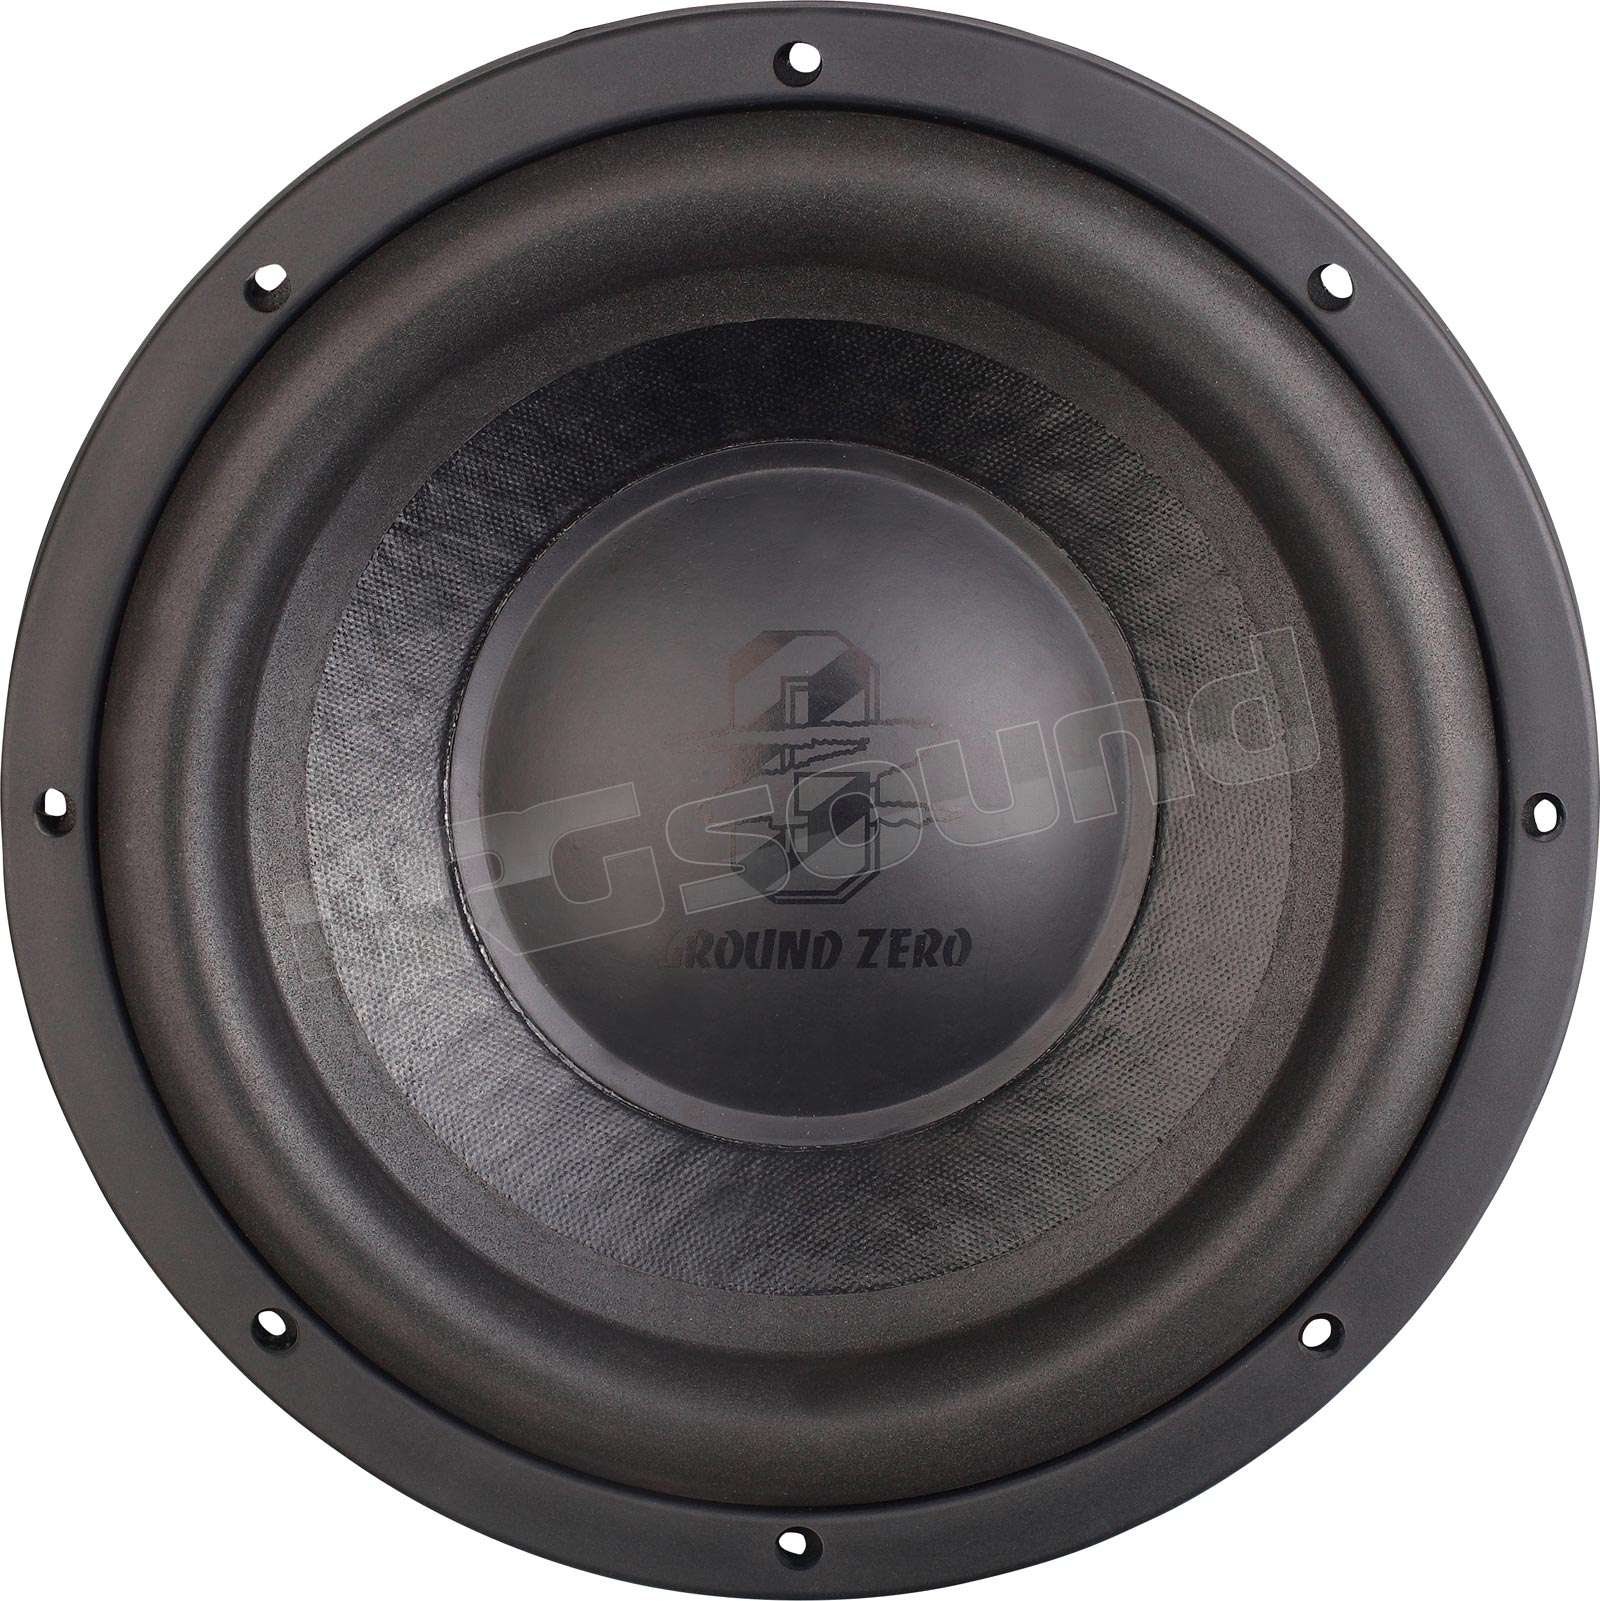 ground zero gzuw 10sqx sub sound quality subwoofer. Black Bedroom Furniture Sets. Home Design Ideas